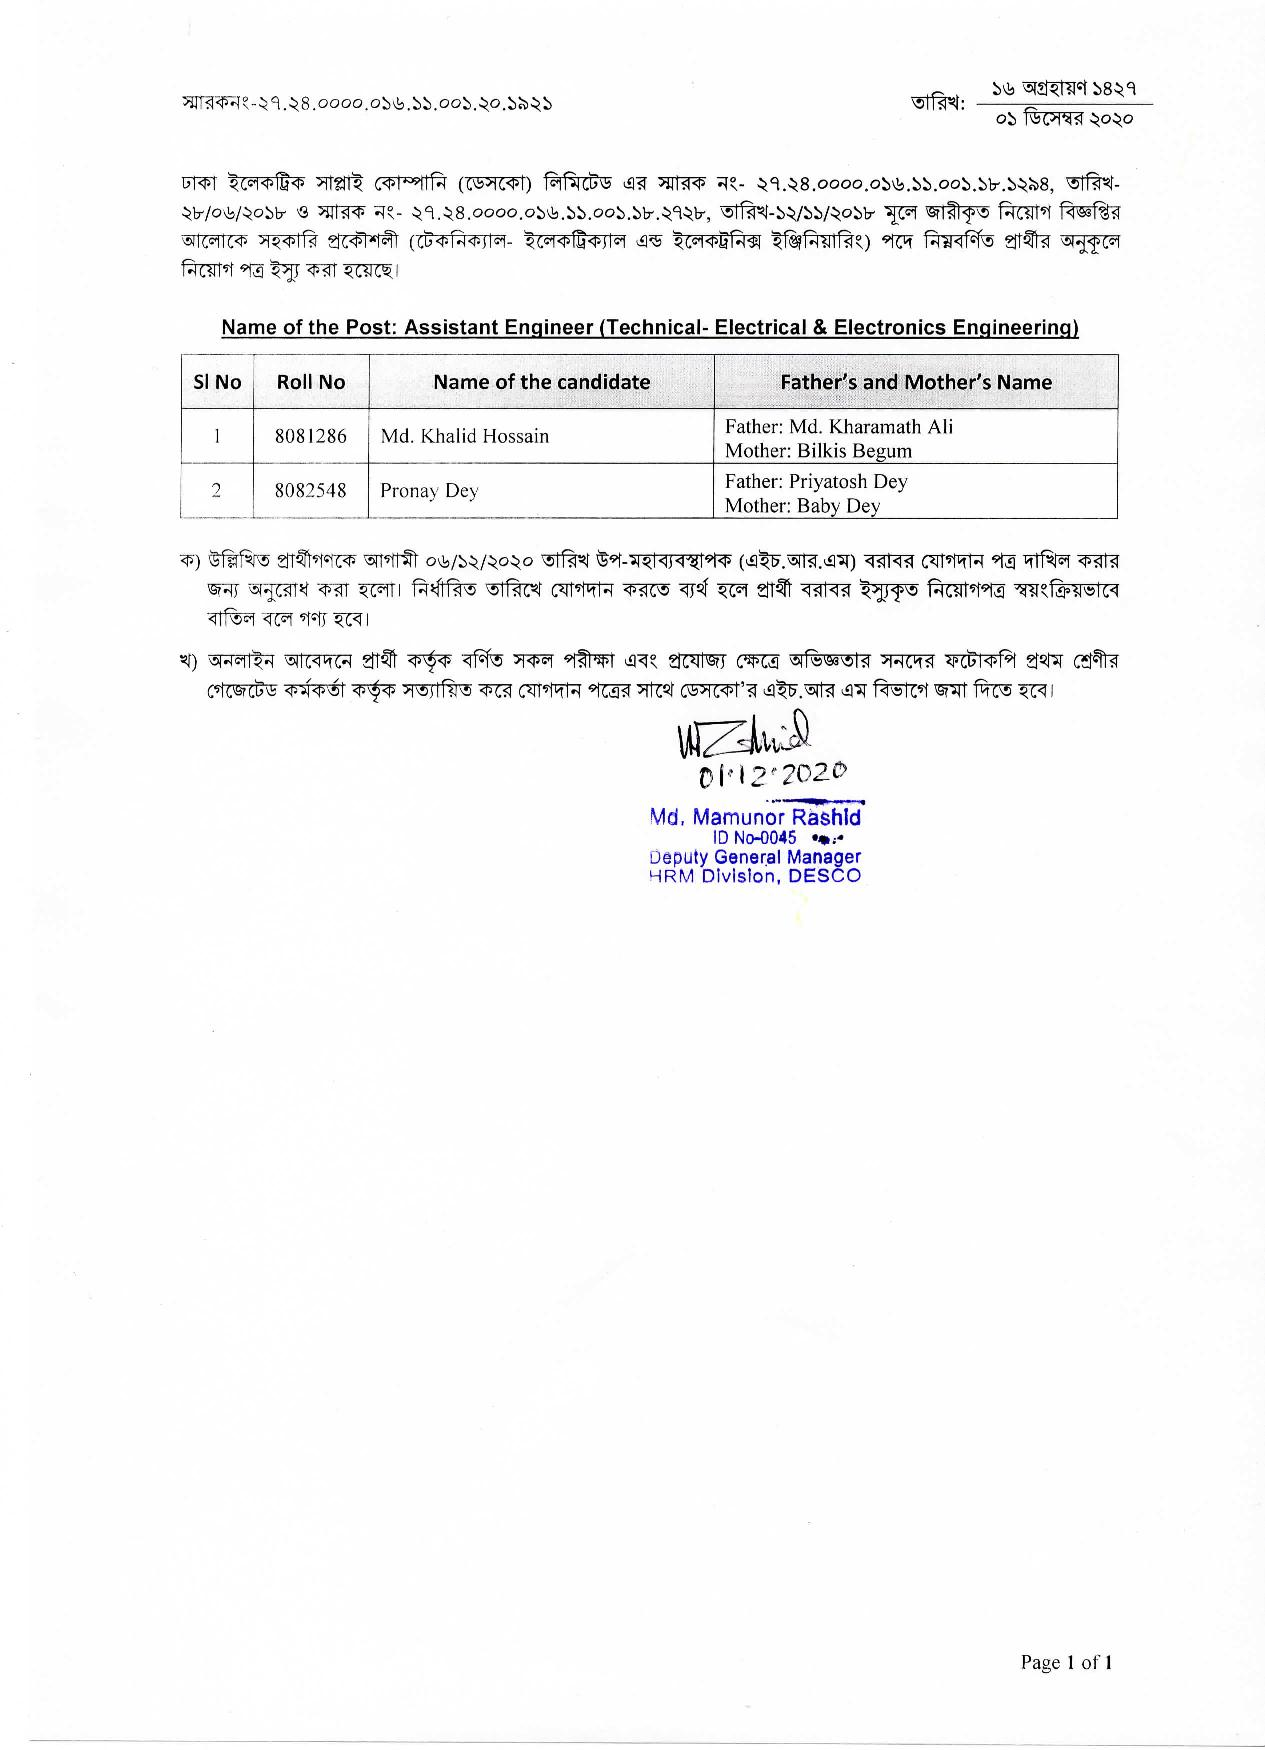 Dhaka Electric Supply Company Limited Exam result 2020